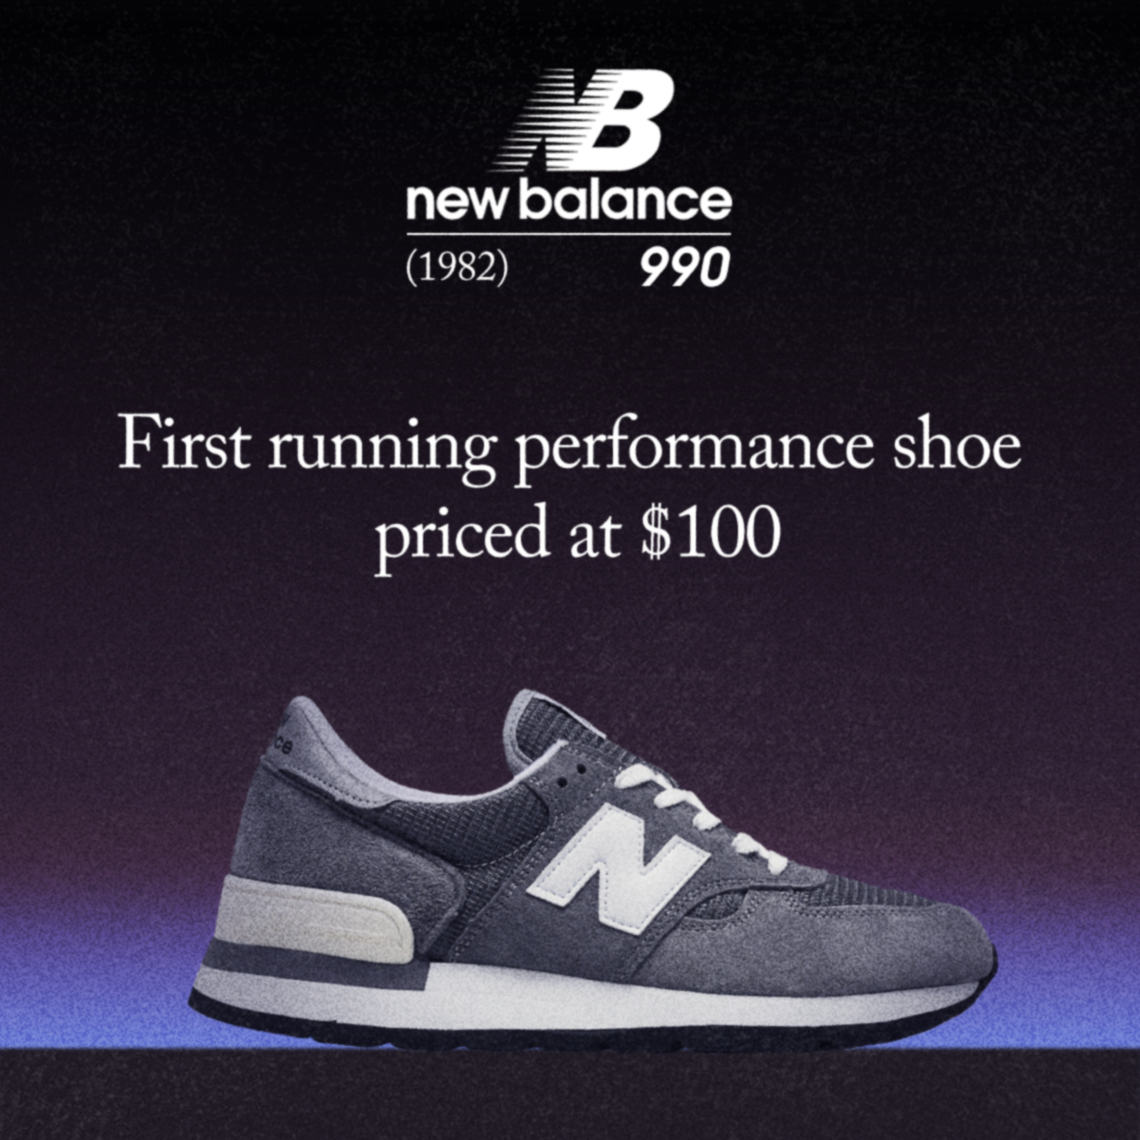 hot sale online 30d48 2e63c The Evolution Of The New Balance 990, From 1982 To Present ...